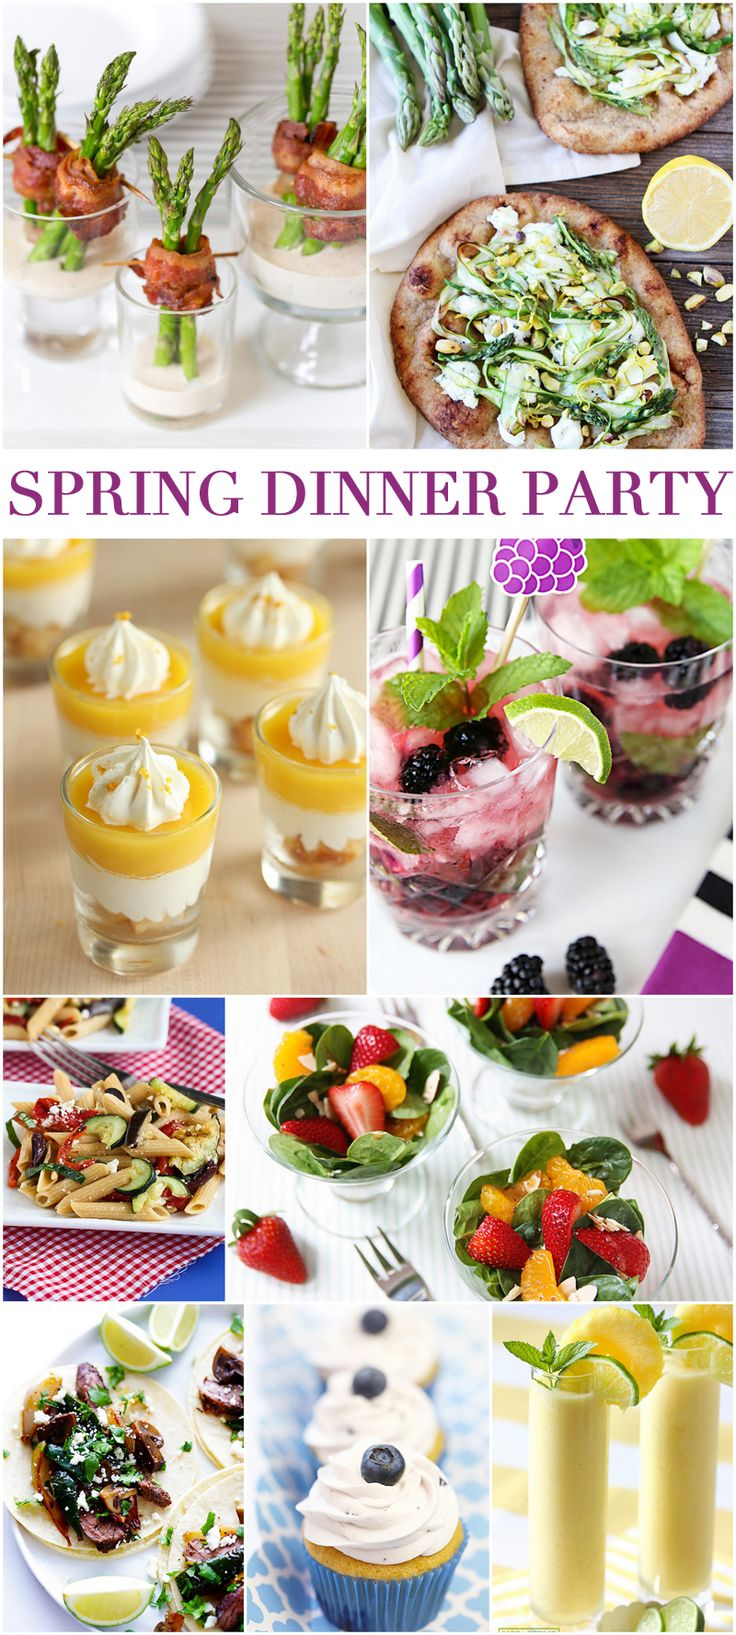 Best 25+ Dinner themes ideas on Pinterest | Family meal planning, Weekly  meal plan family and Family dinner menu ideas